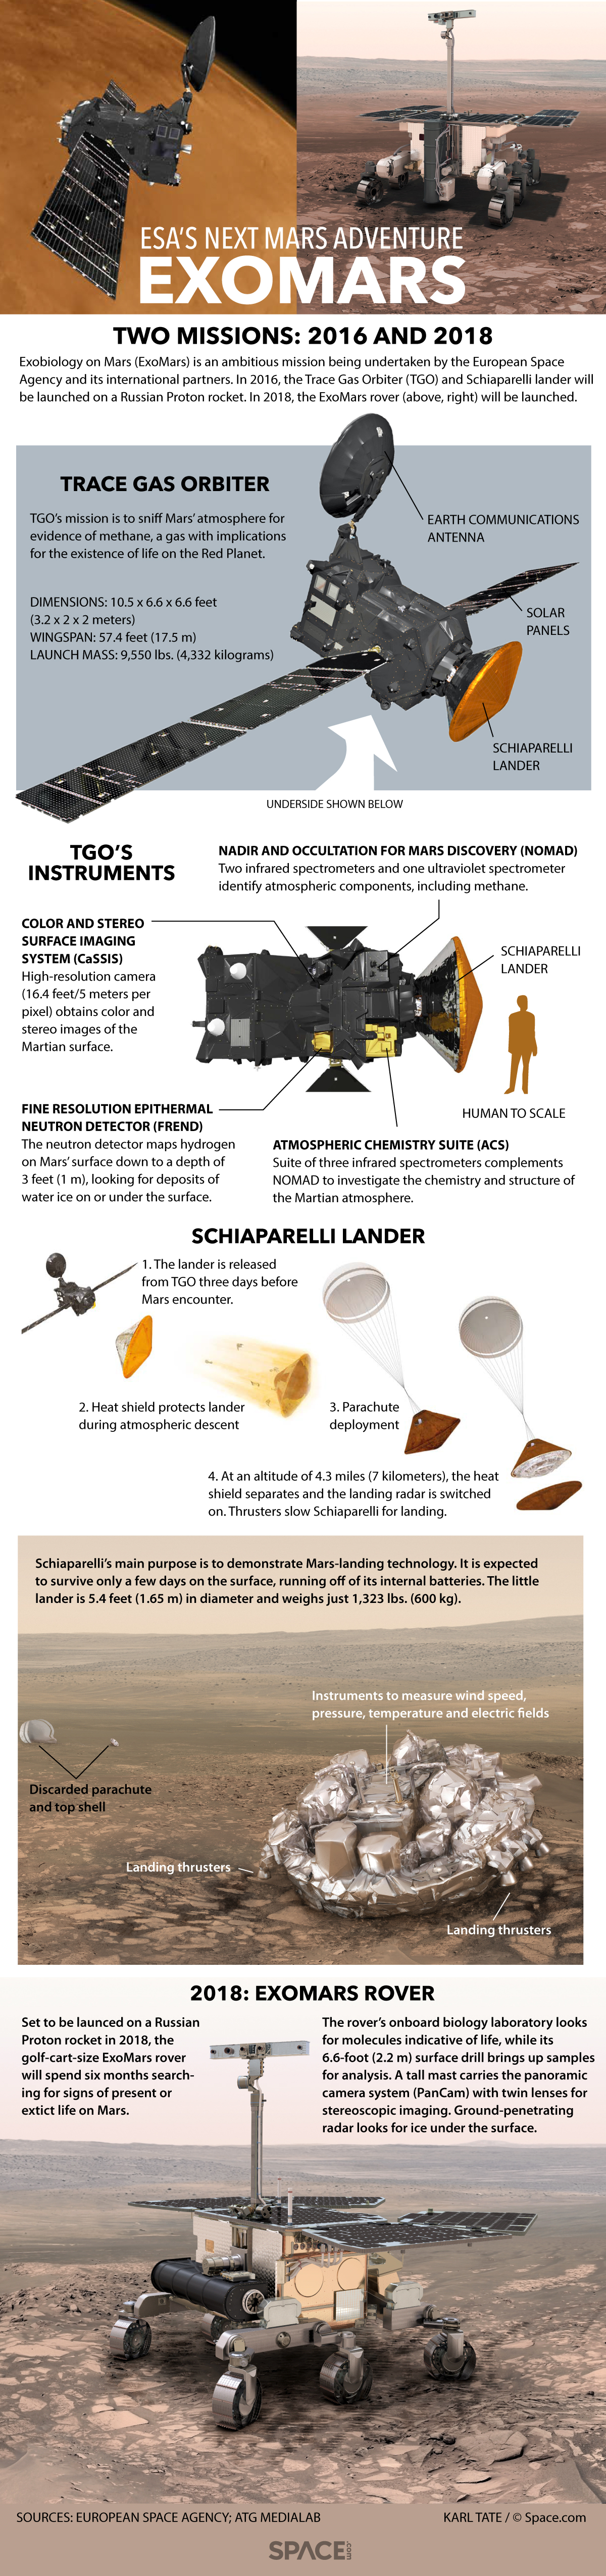 How Europe's ExoMars Missions to Mars Work (Infographic)